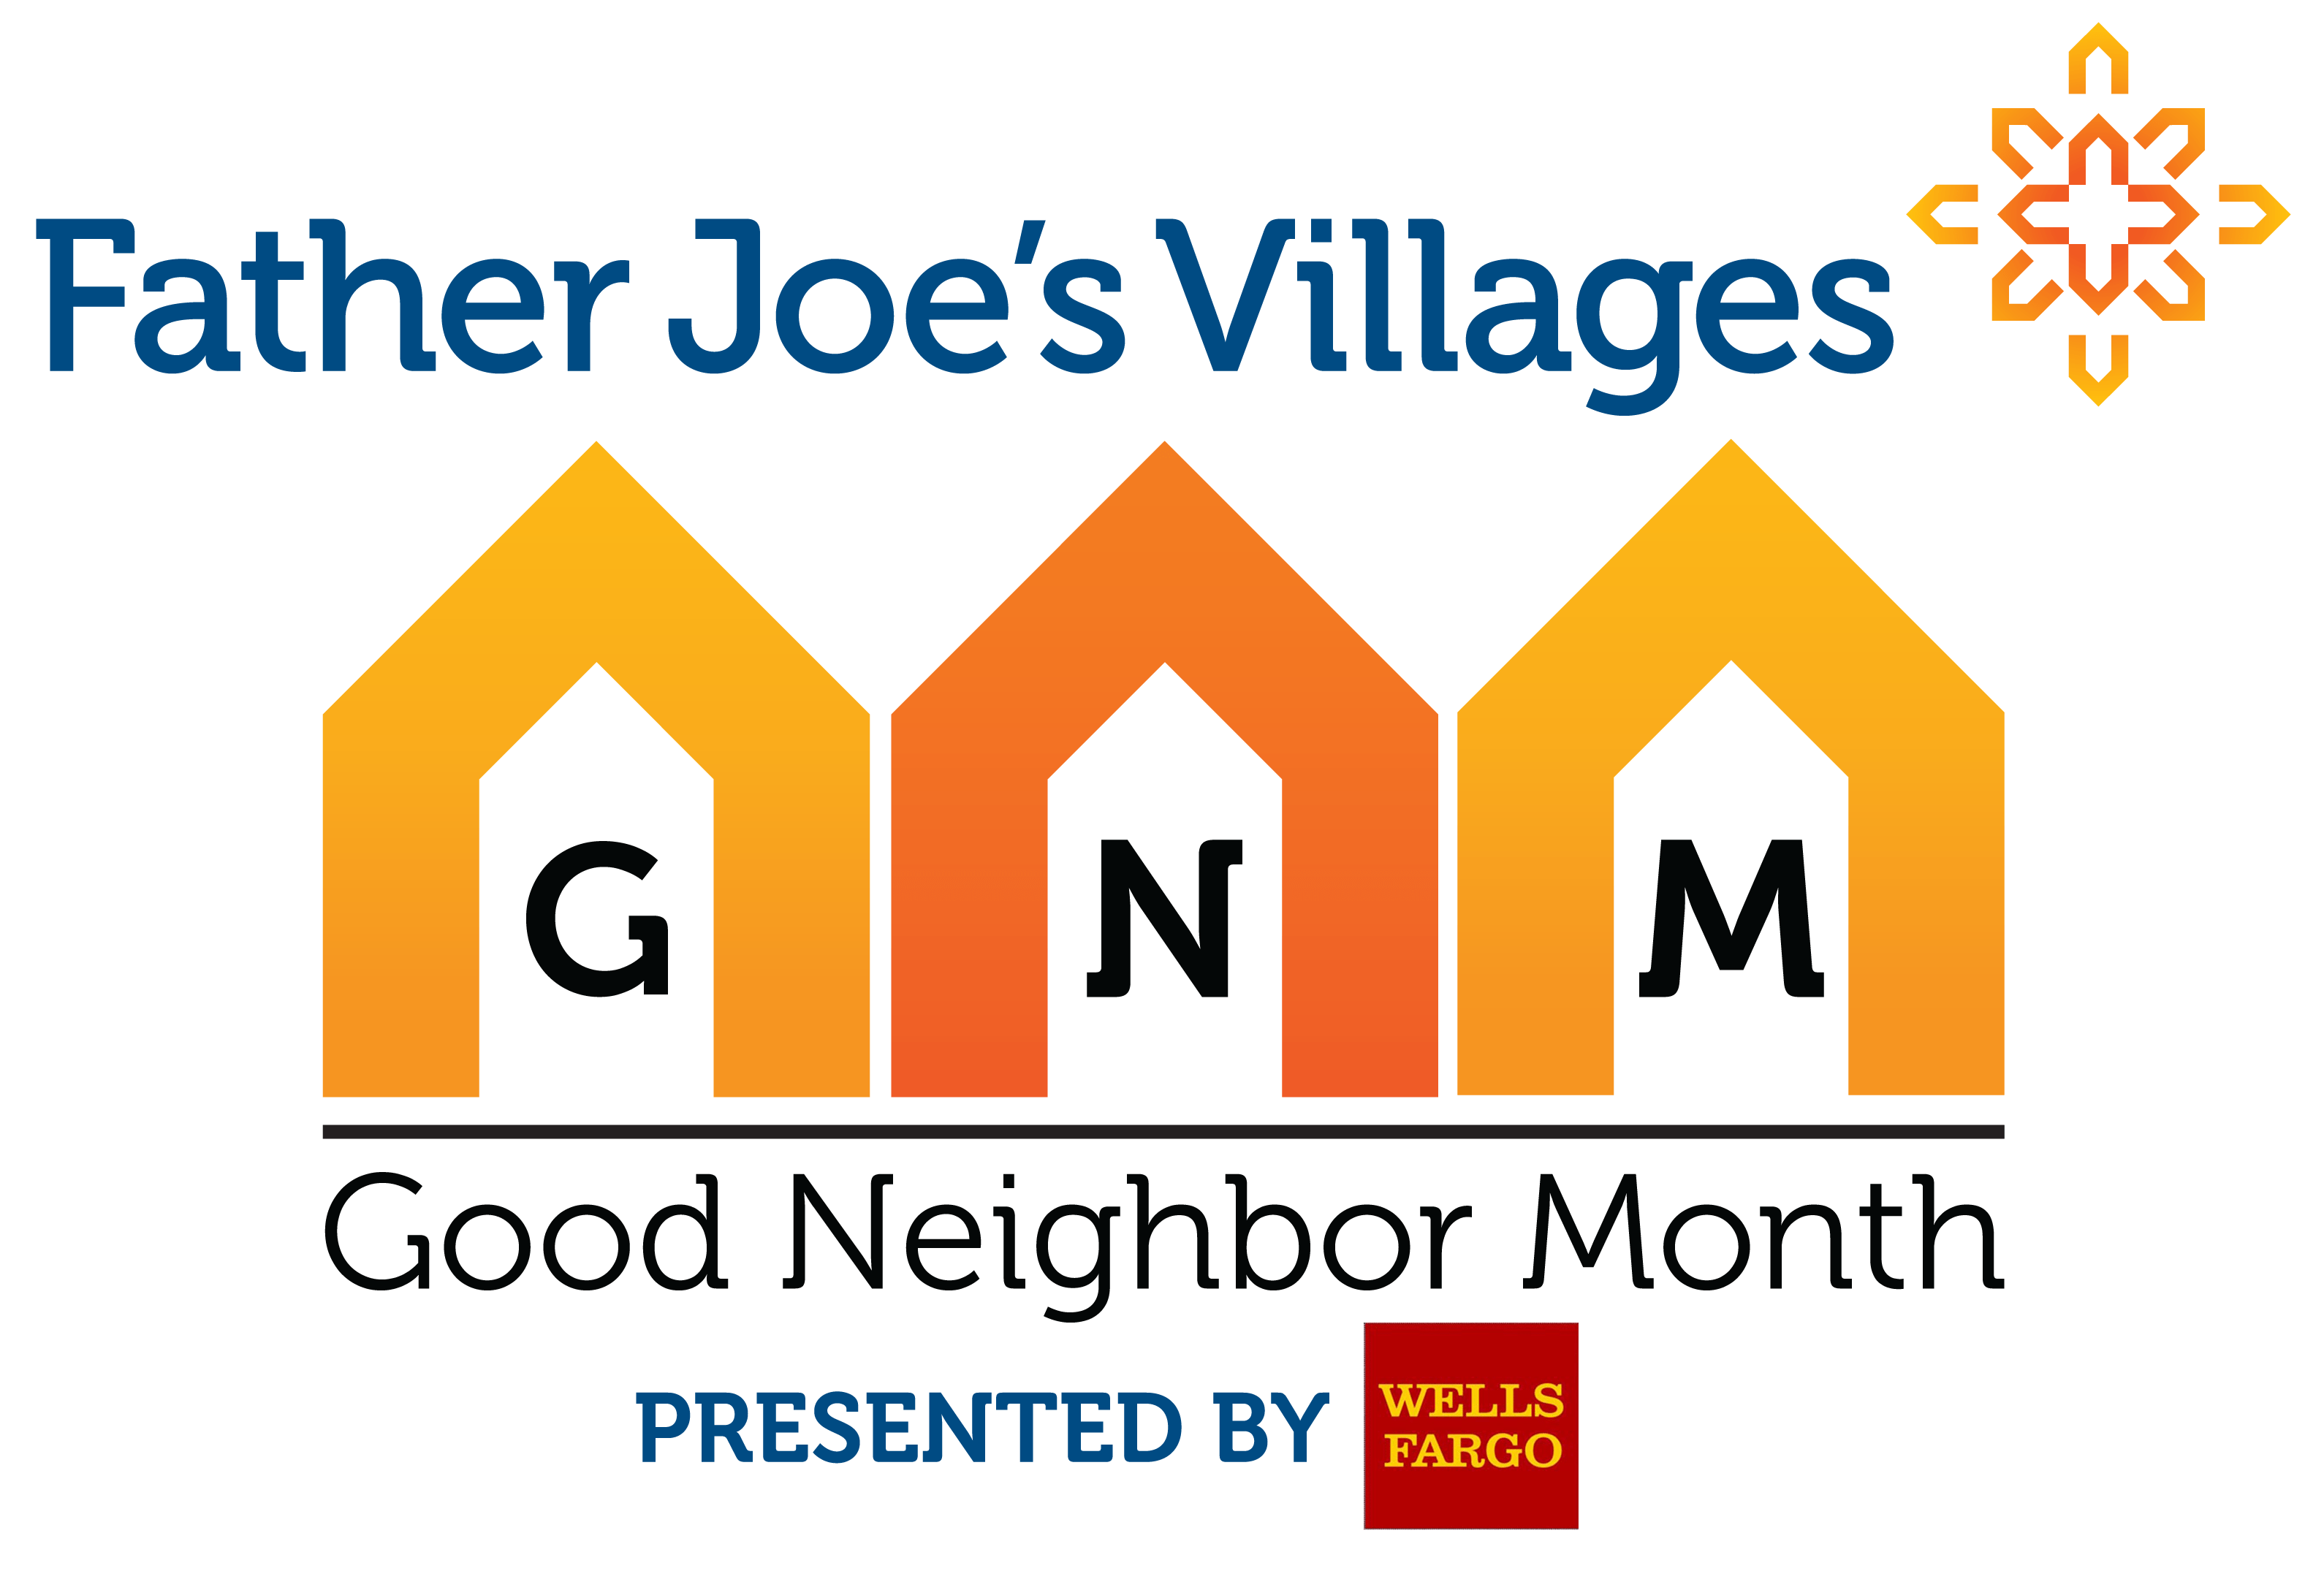 Deacon Jim, Wells Fargo President and Little Tommy Talk Good Neighbor Month